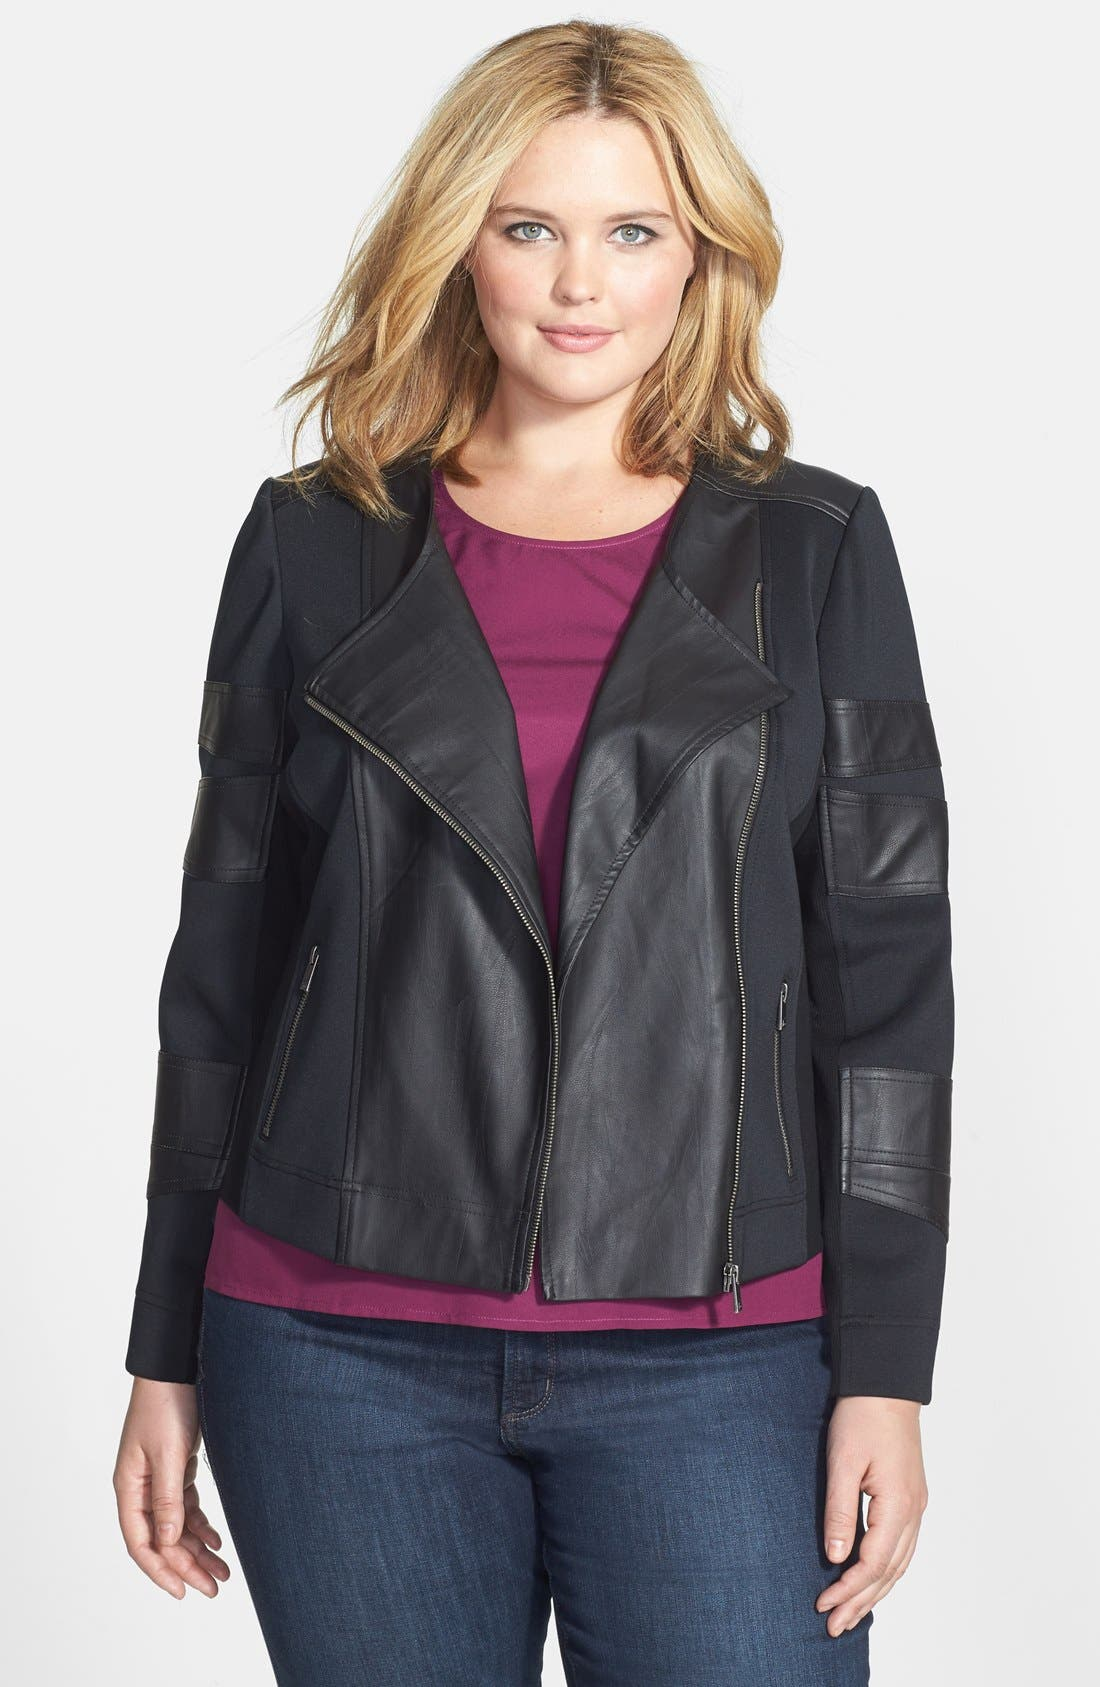 Alternate Image 1 Selected - Two by Vince Camuto Collarless Mixed Media Moto Jacket (Plus Size)